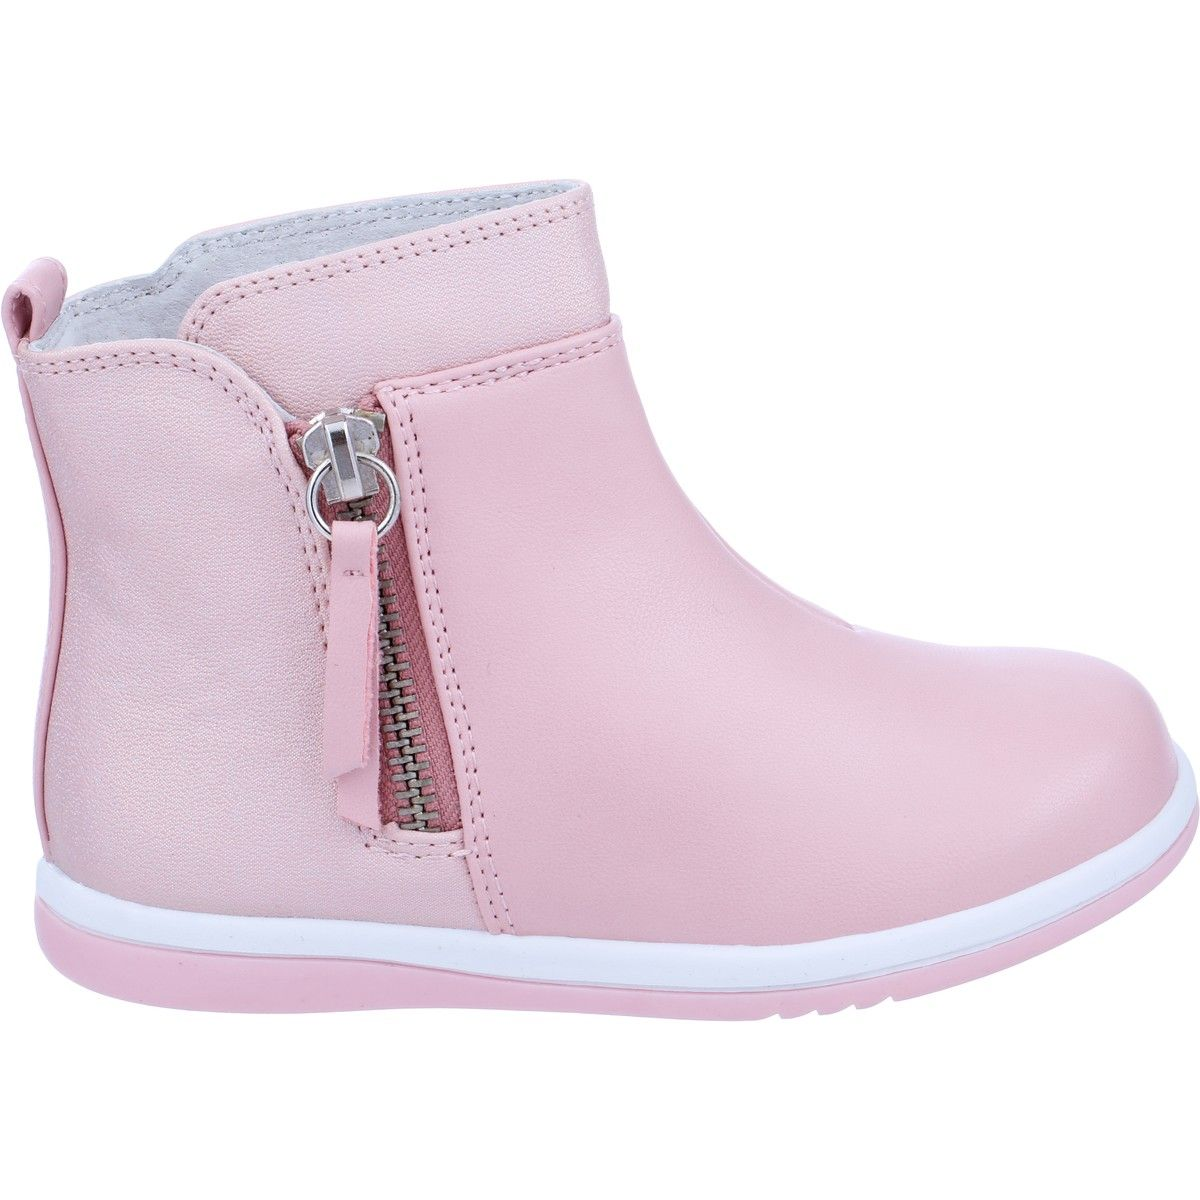 Grosby Infant Girls Boots - Pink | BIG